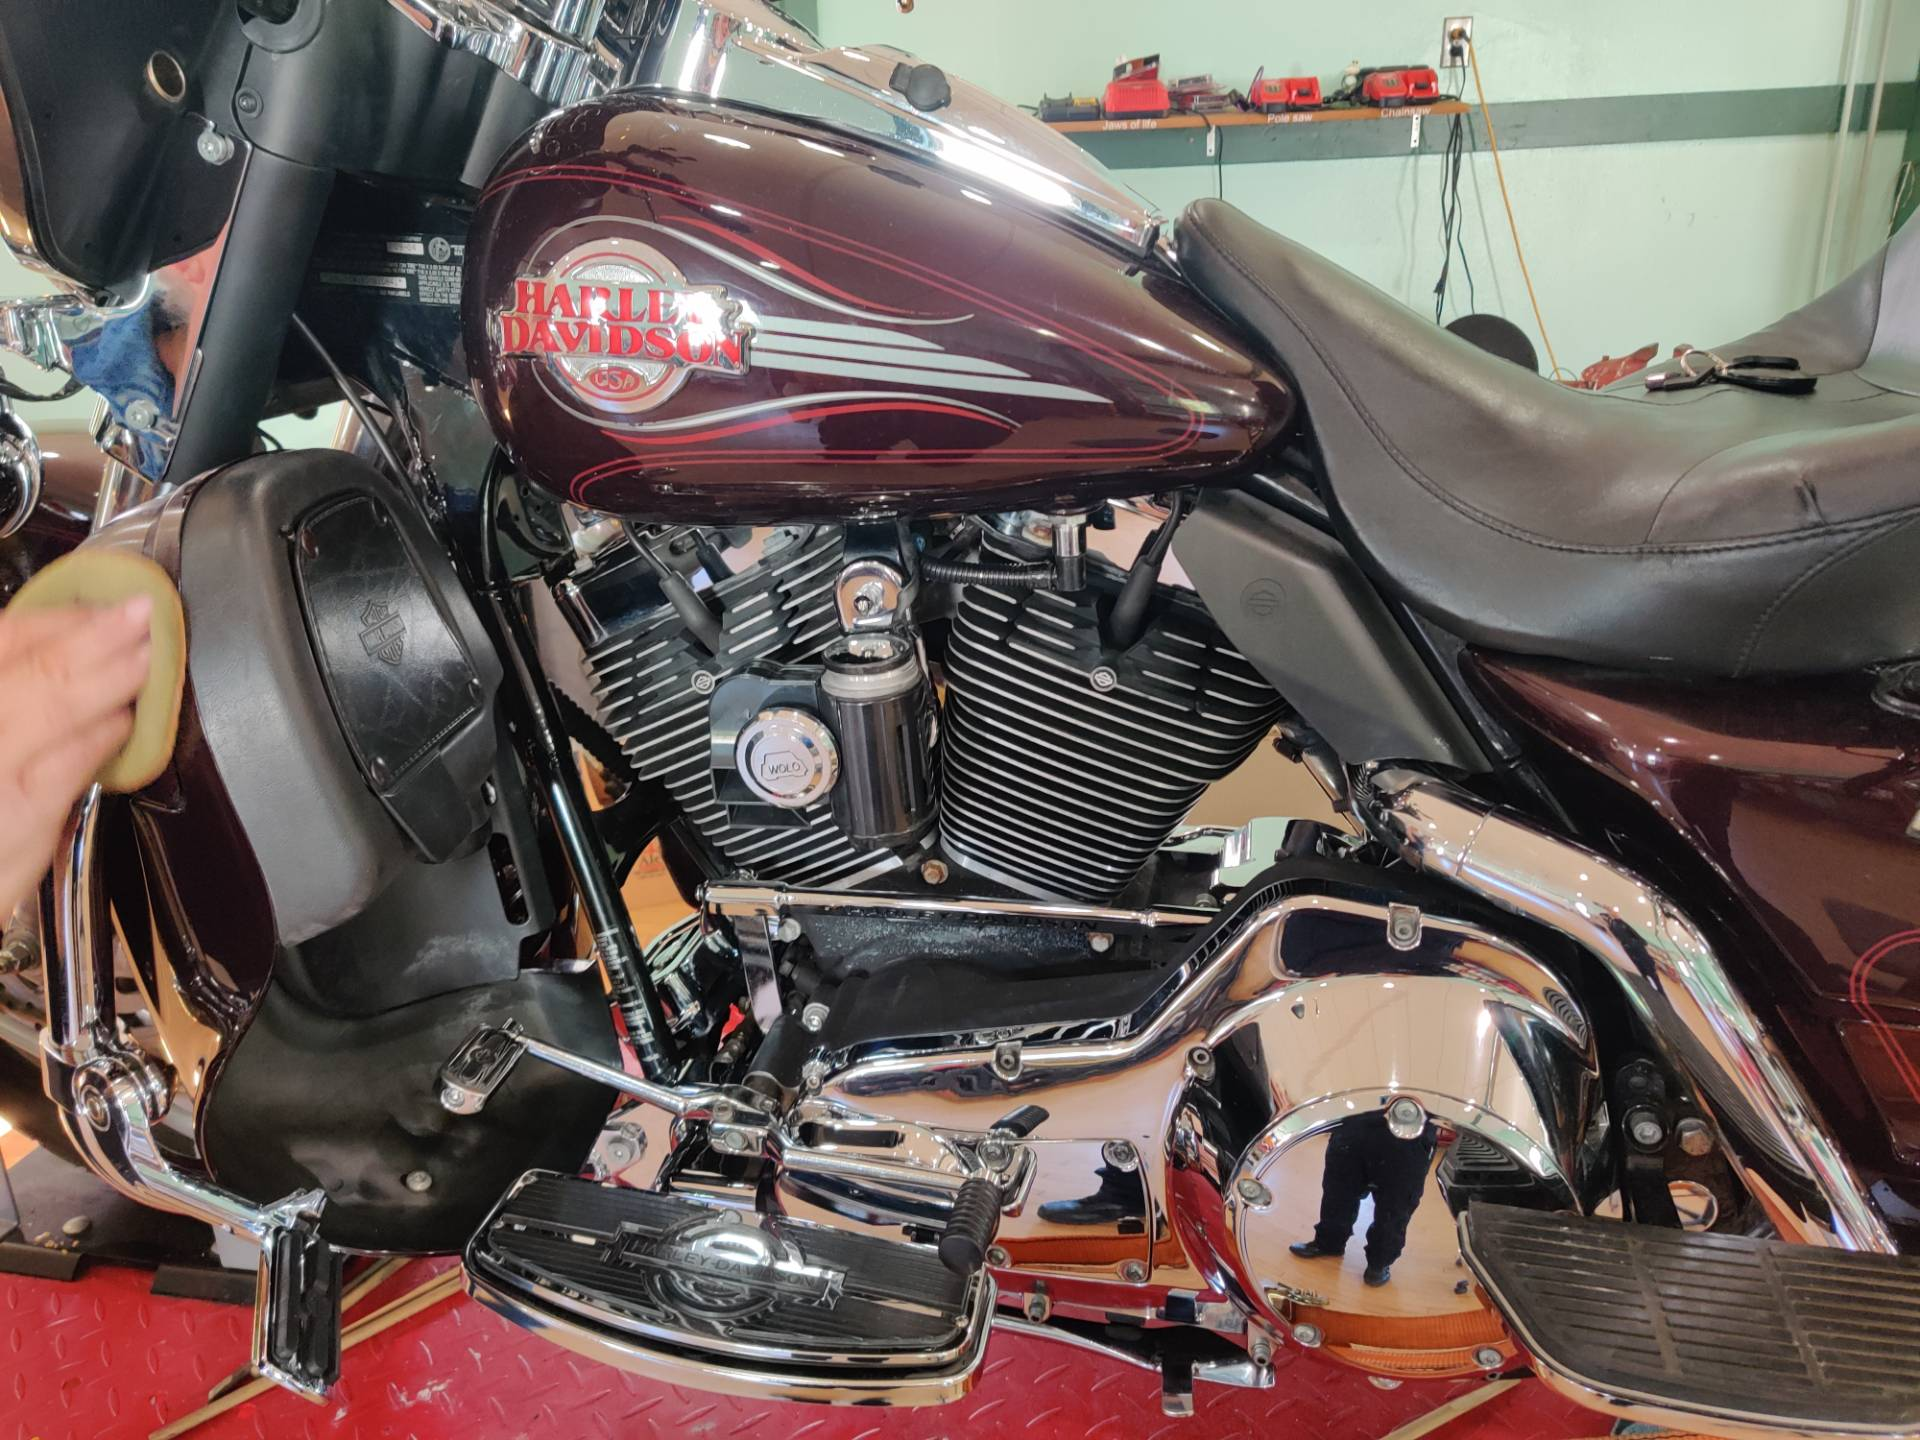 2005 Harley-Davidson Ultra Classic Shriners Edition in Forty Fort, Pennsylvania - Photo 9